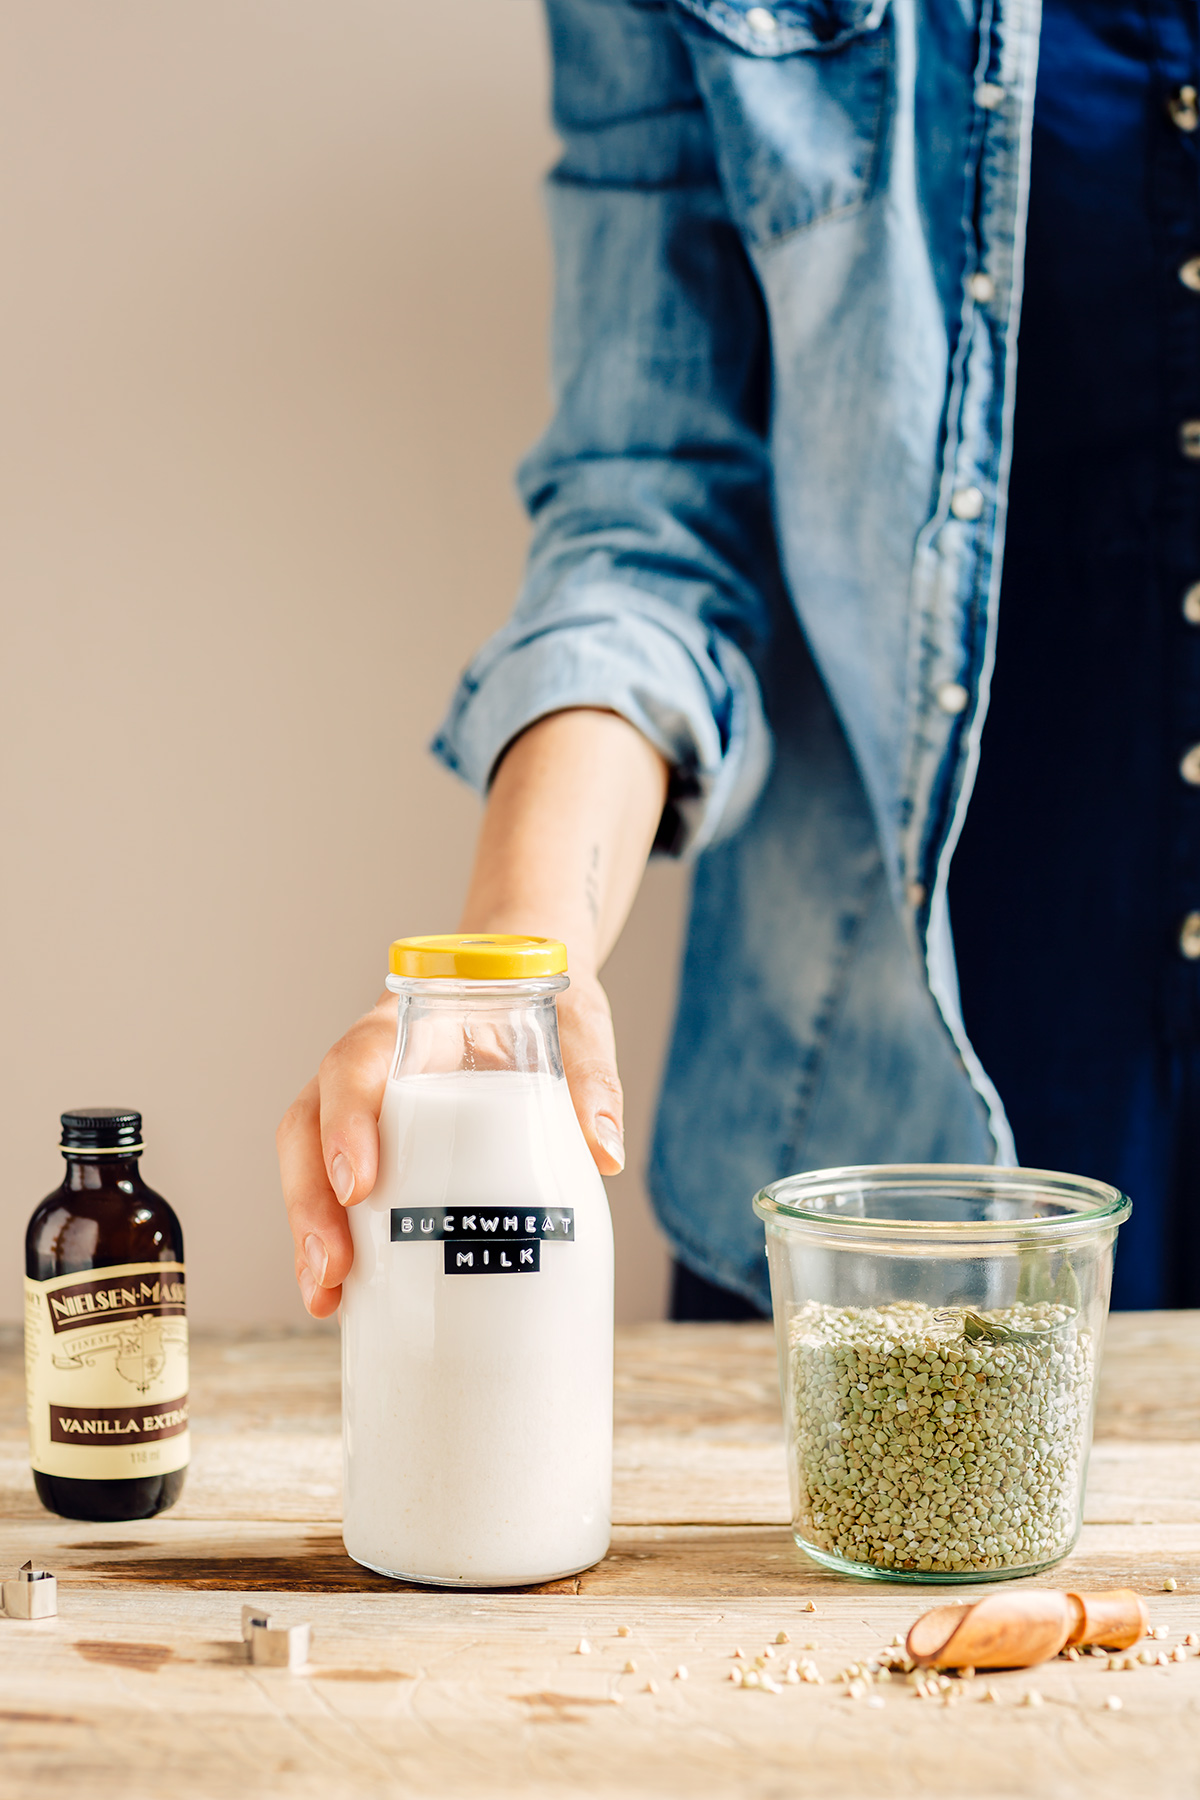 come preparare il LATTE di GRANO SARACENO fatto in casa ricetta facile veloce How to make BUCKWHEAT MILK at home with slow juicer #dairyfree milk vegan glutenfree